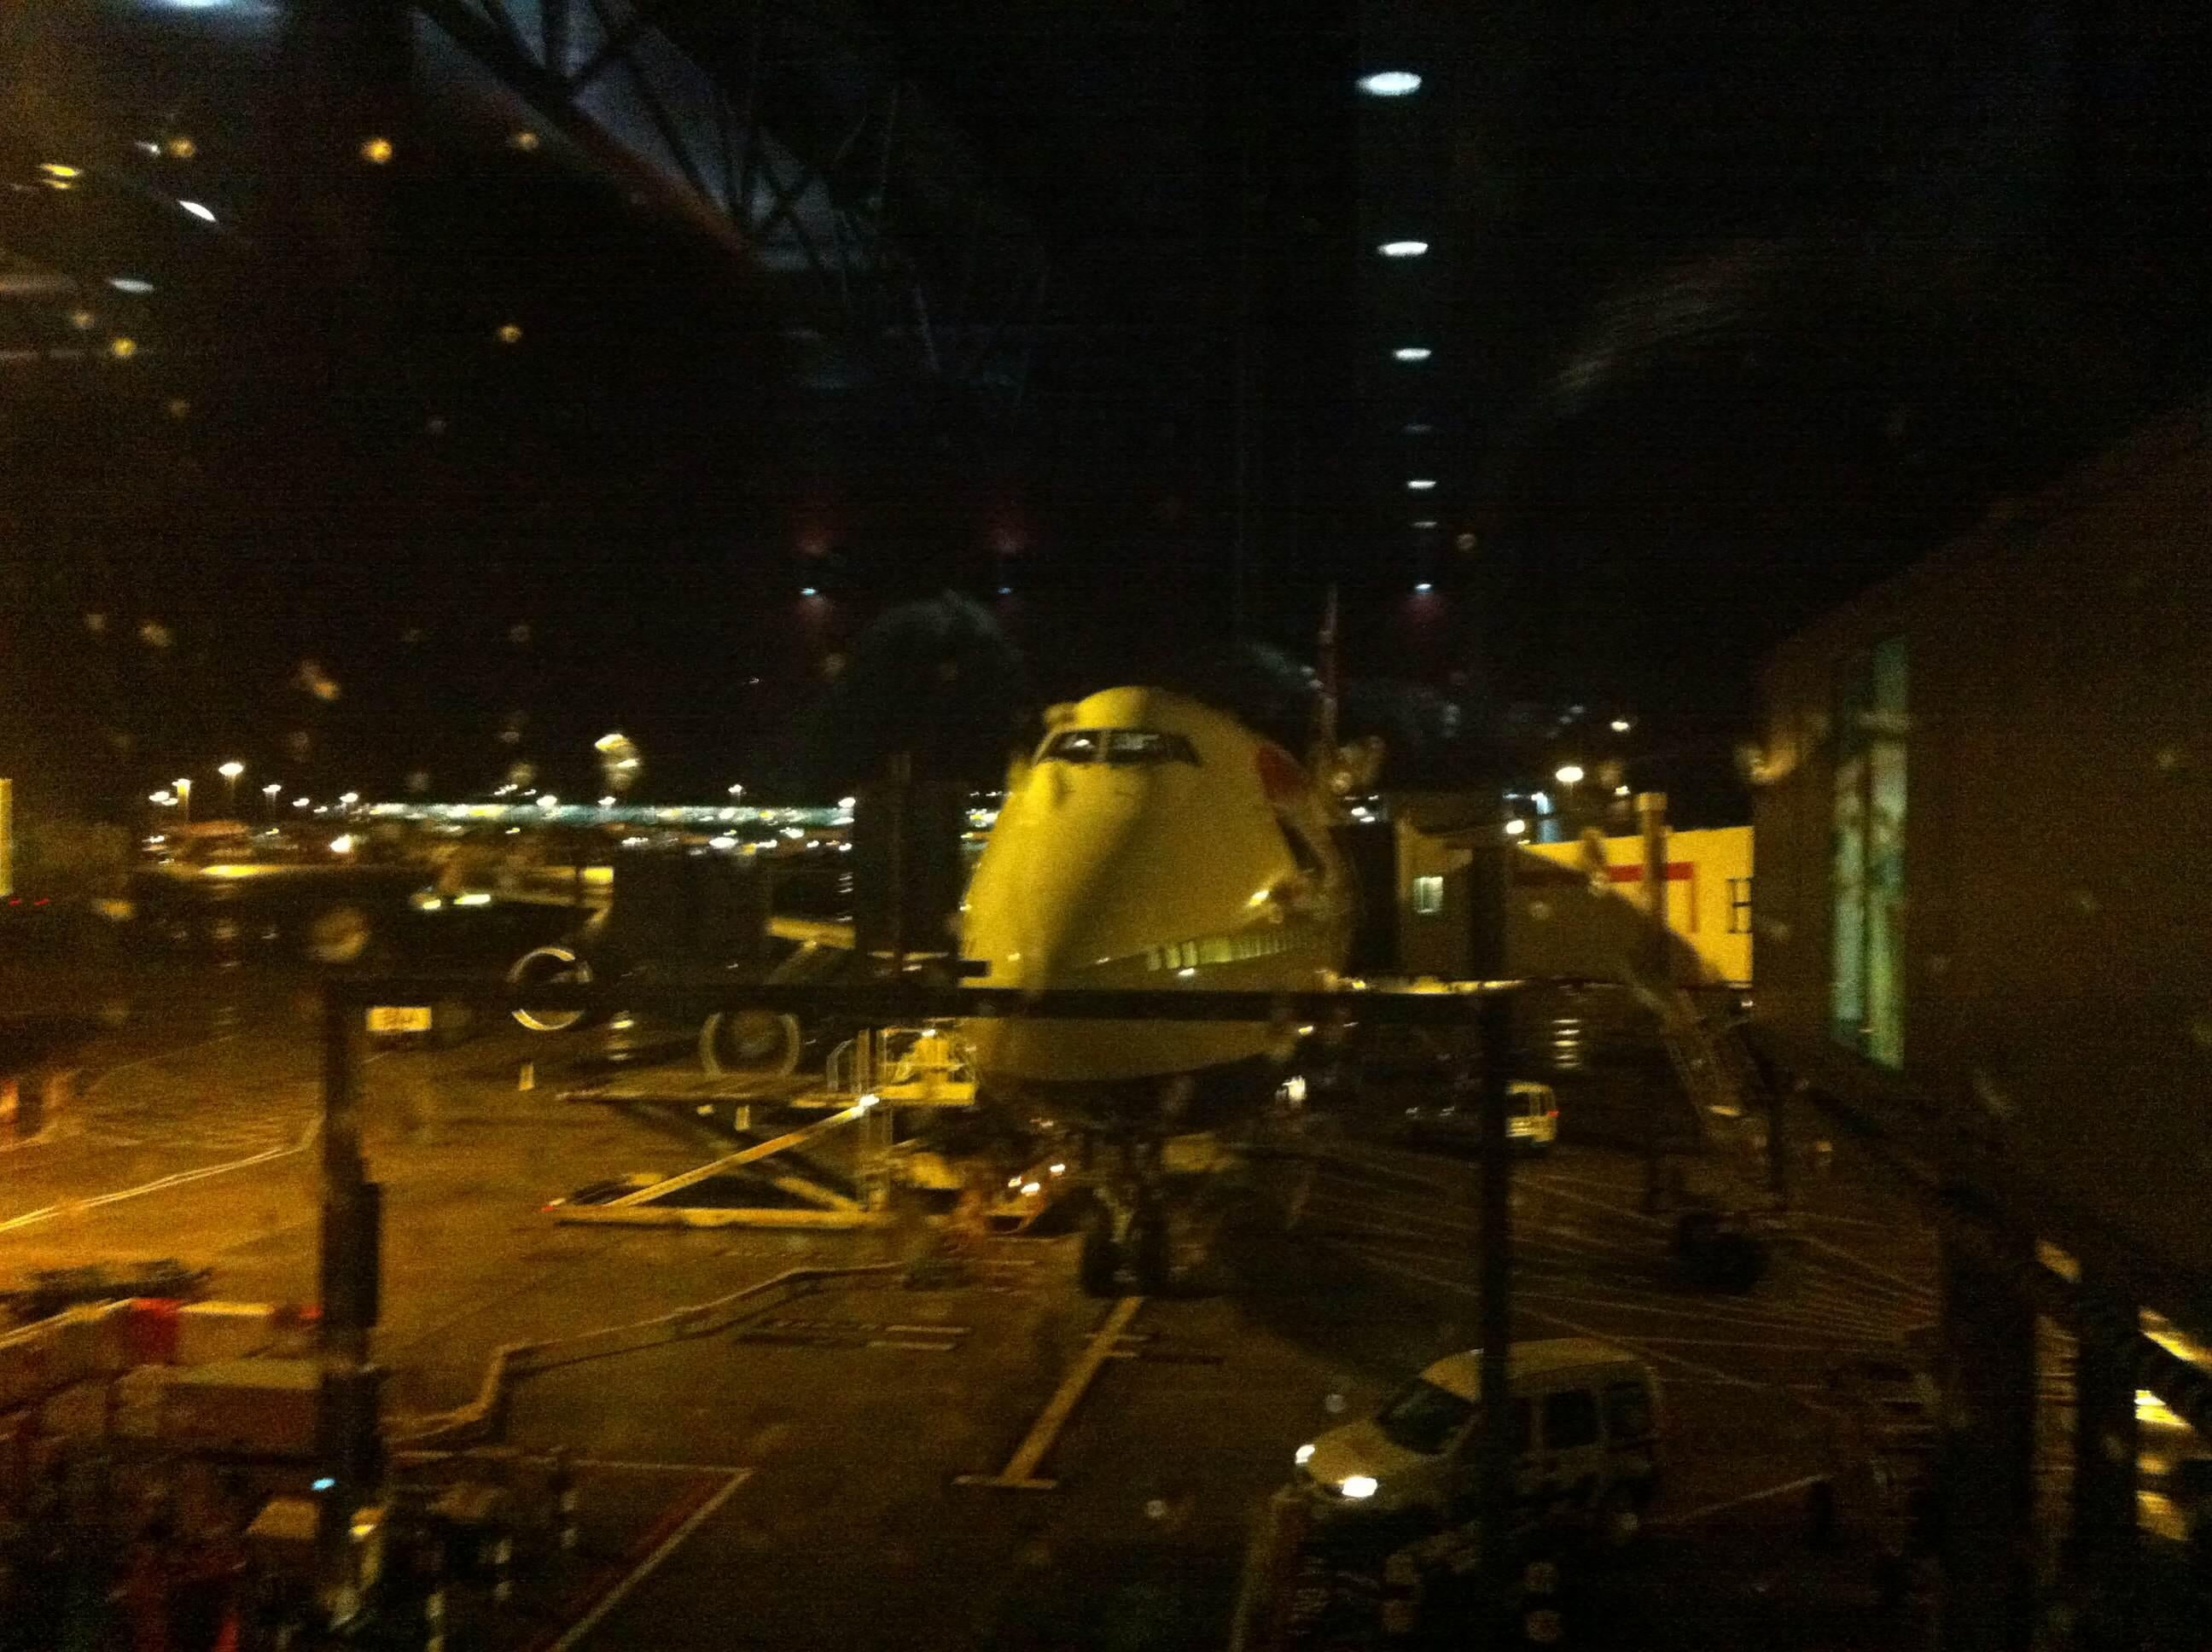 Noche en Aeropuerto de Londres - Heathrow